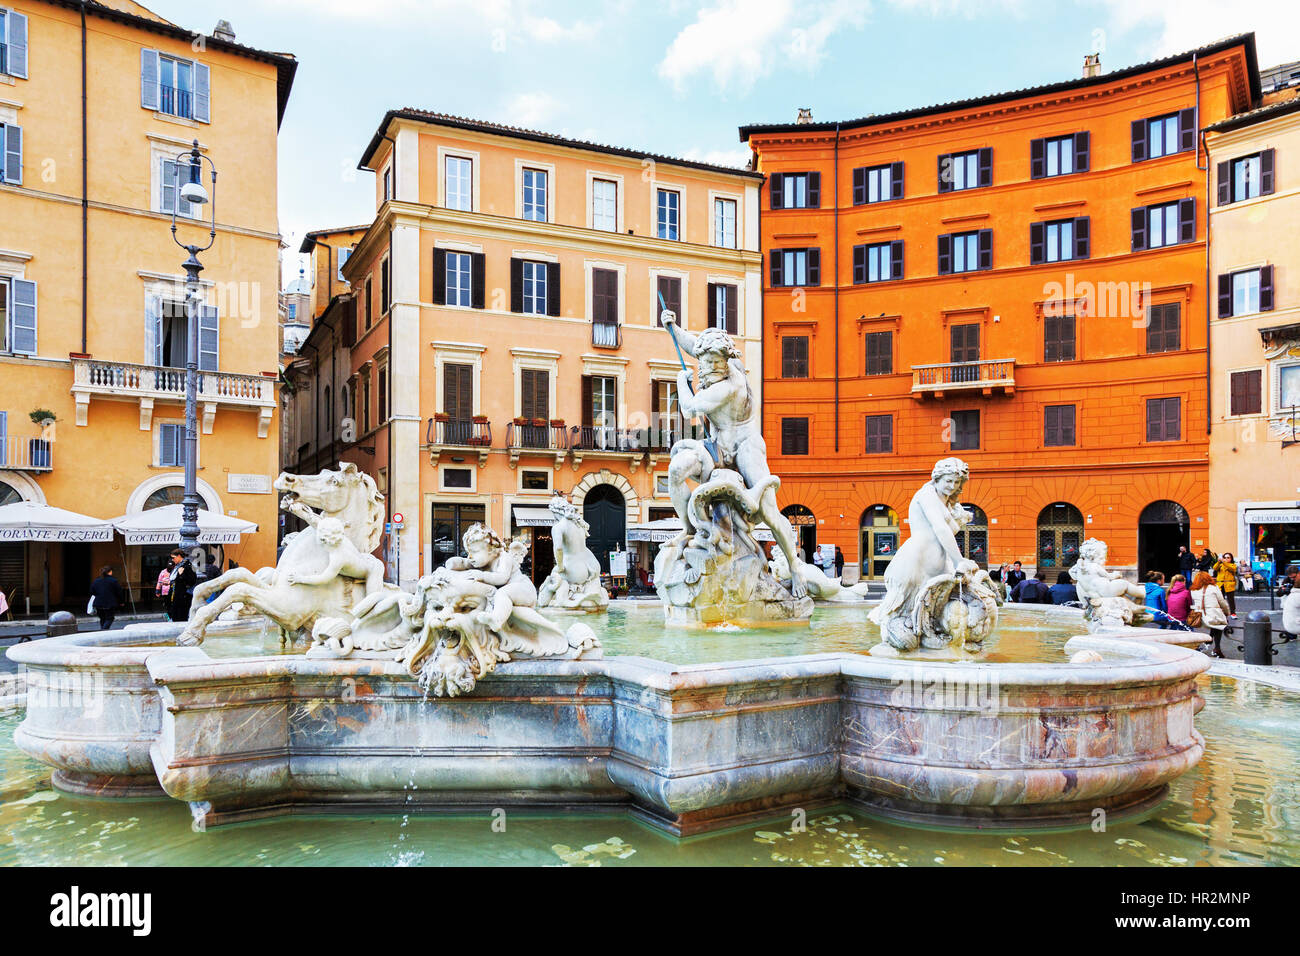 Water fountain on Piazza Navona, Roma, Italy - Stock Image